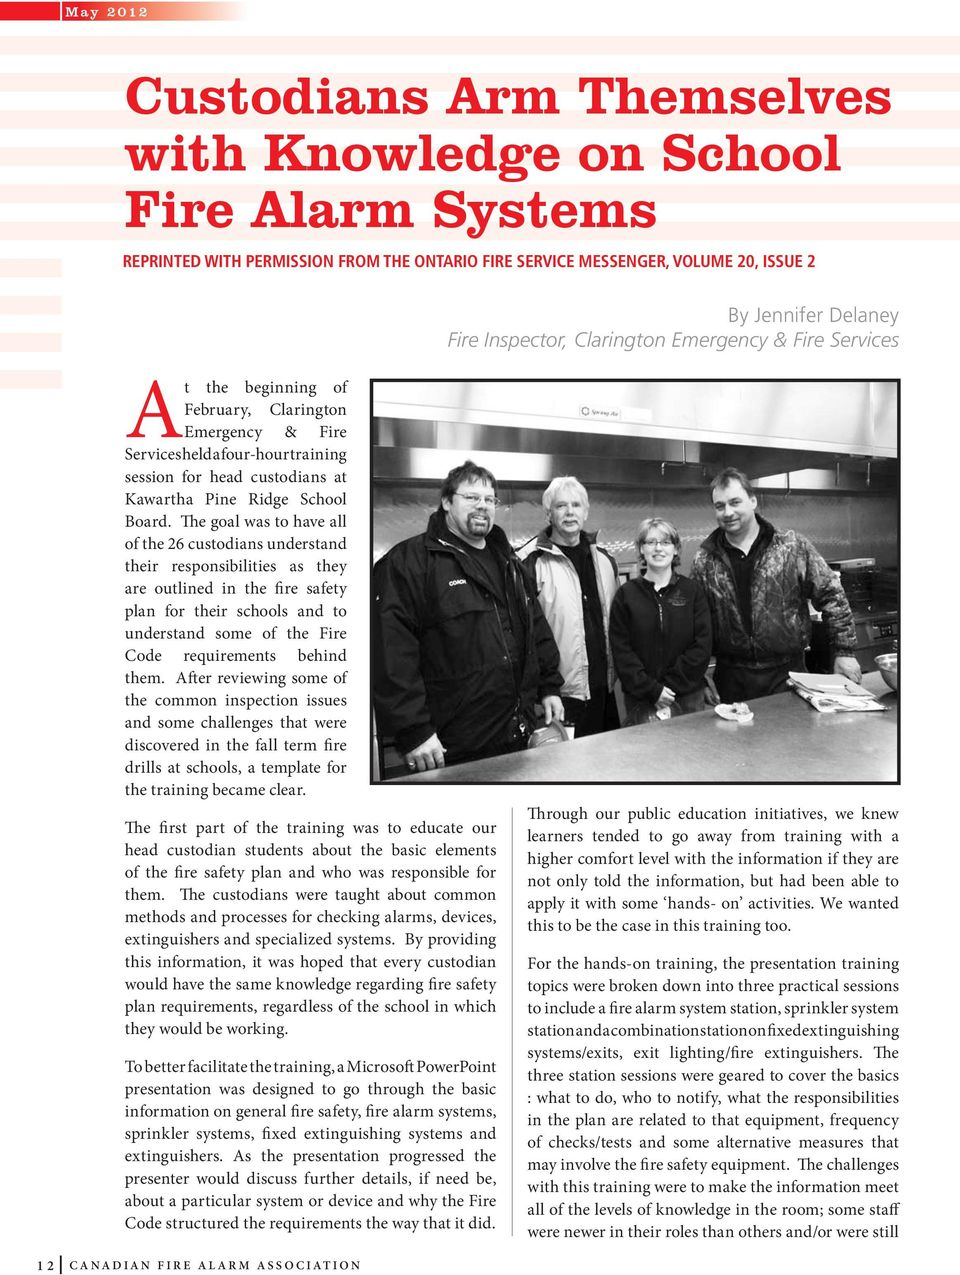 The goal was to have all of the 26 custodians understand their responsibilities as they are outlined in the fire safety plan for their schools and to understand some of the Fire Code requirements